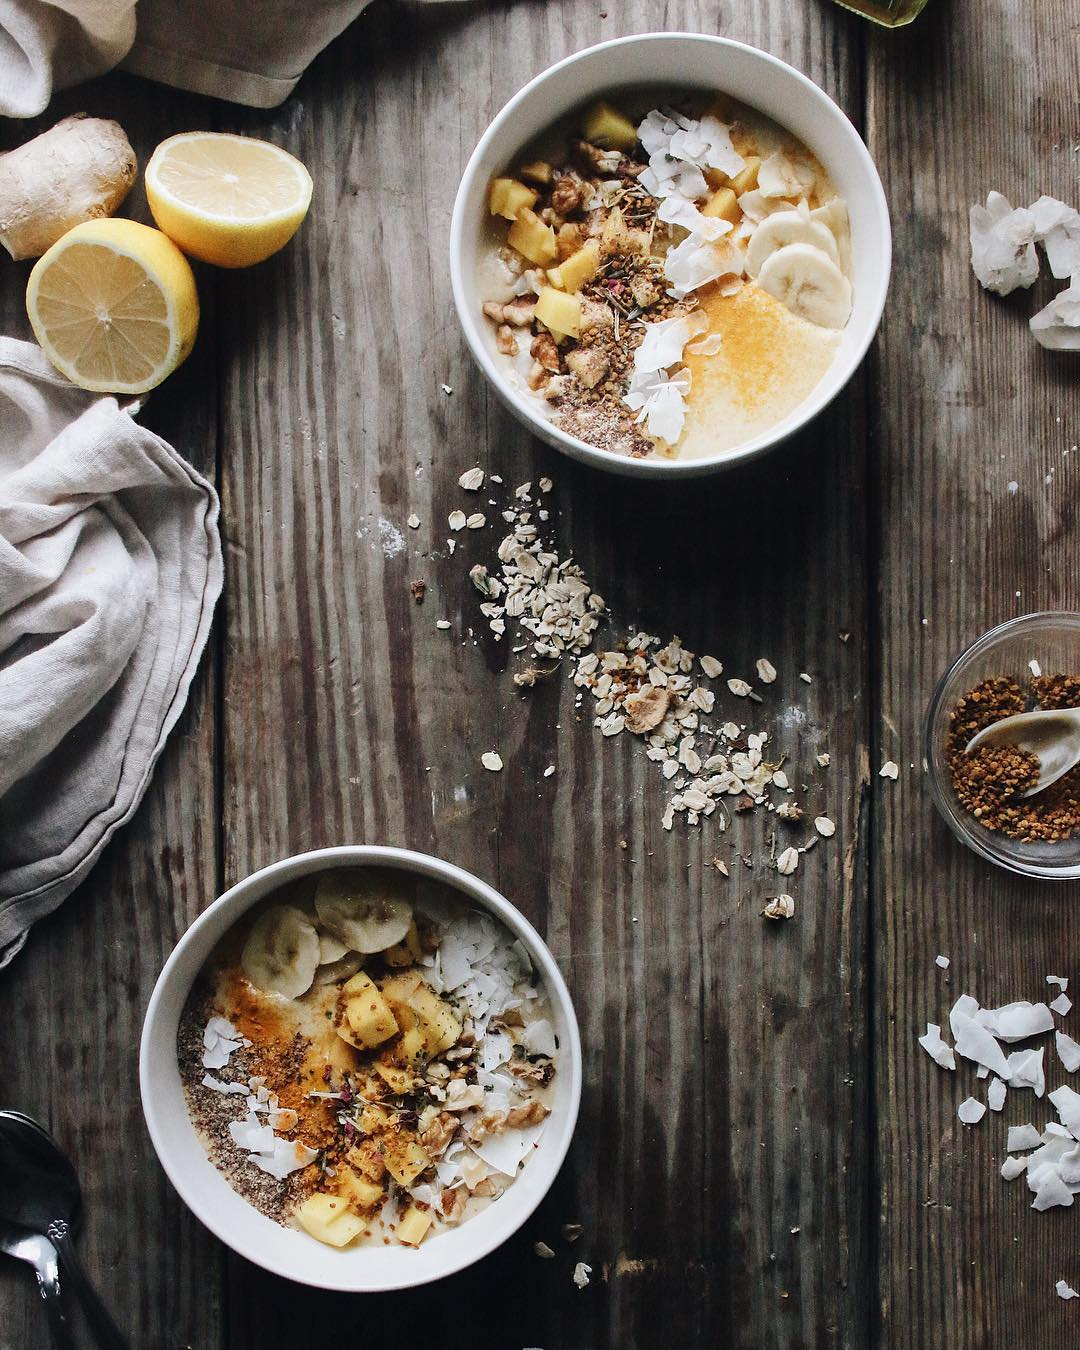 PEACH OAT SMOOTHIE BOWL - Activate your Sacral Chakra